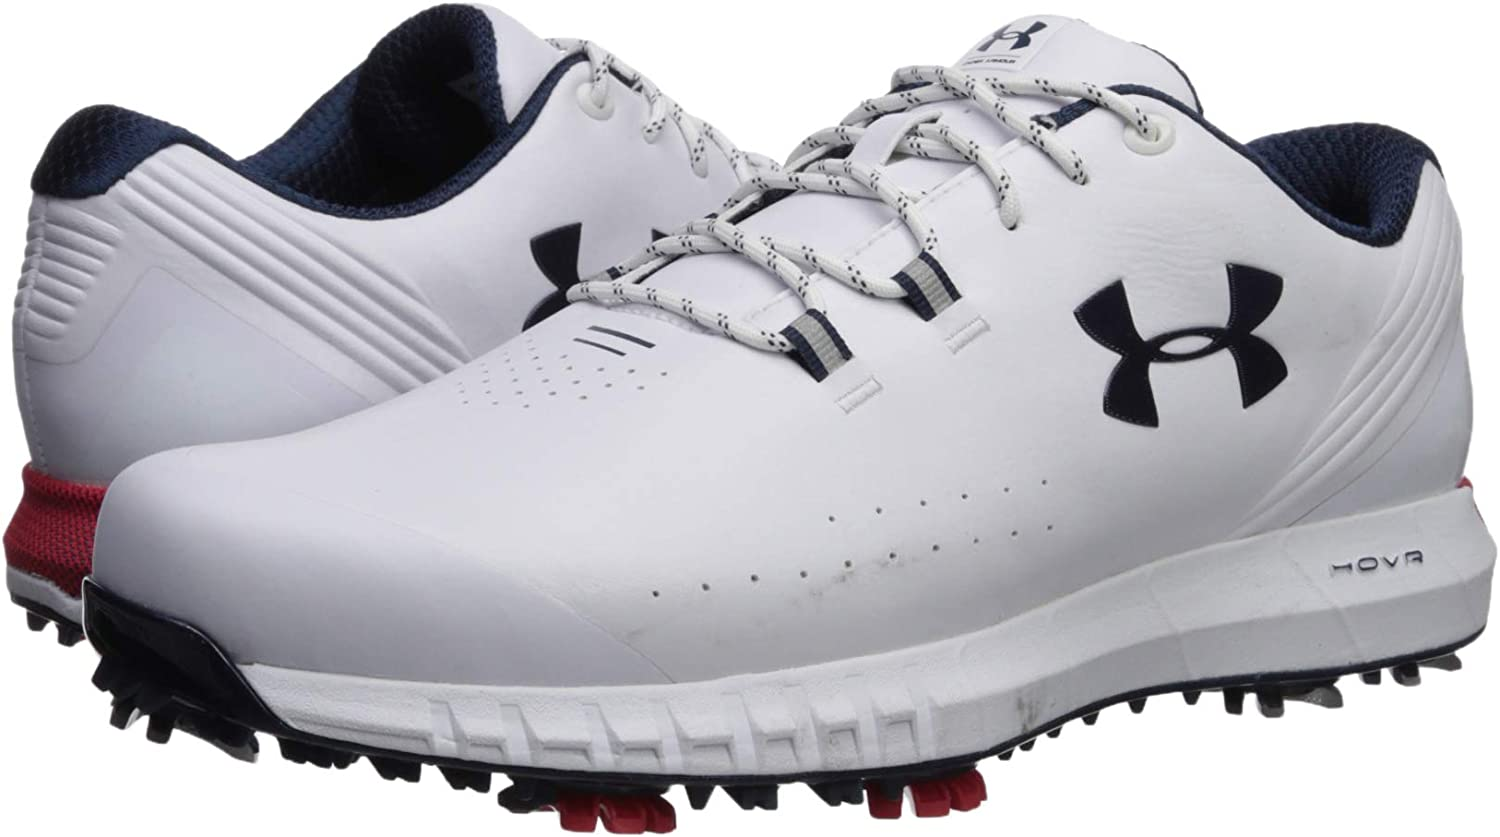 Under Armour Men's HOVR Drive Wide Golf